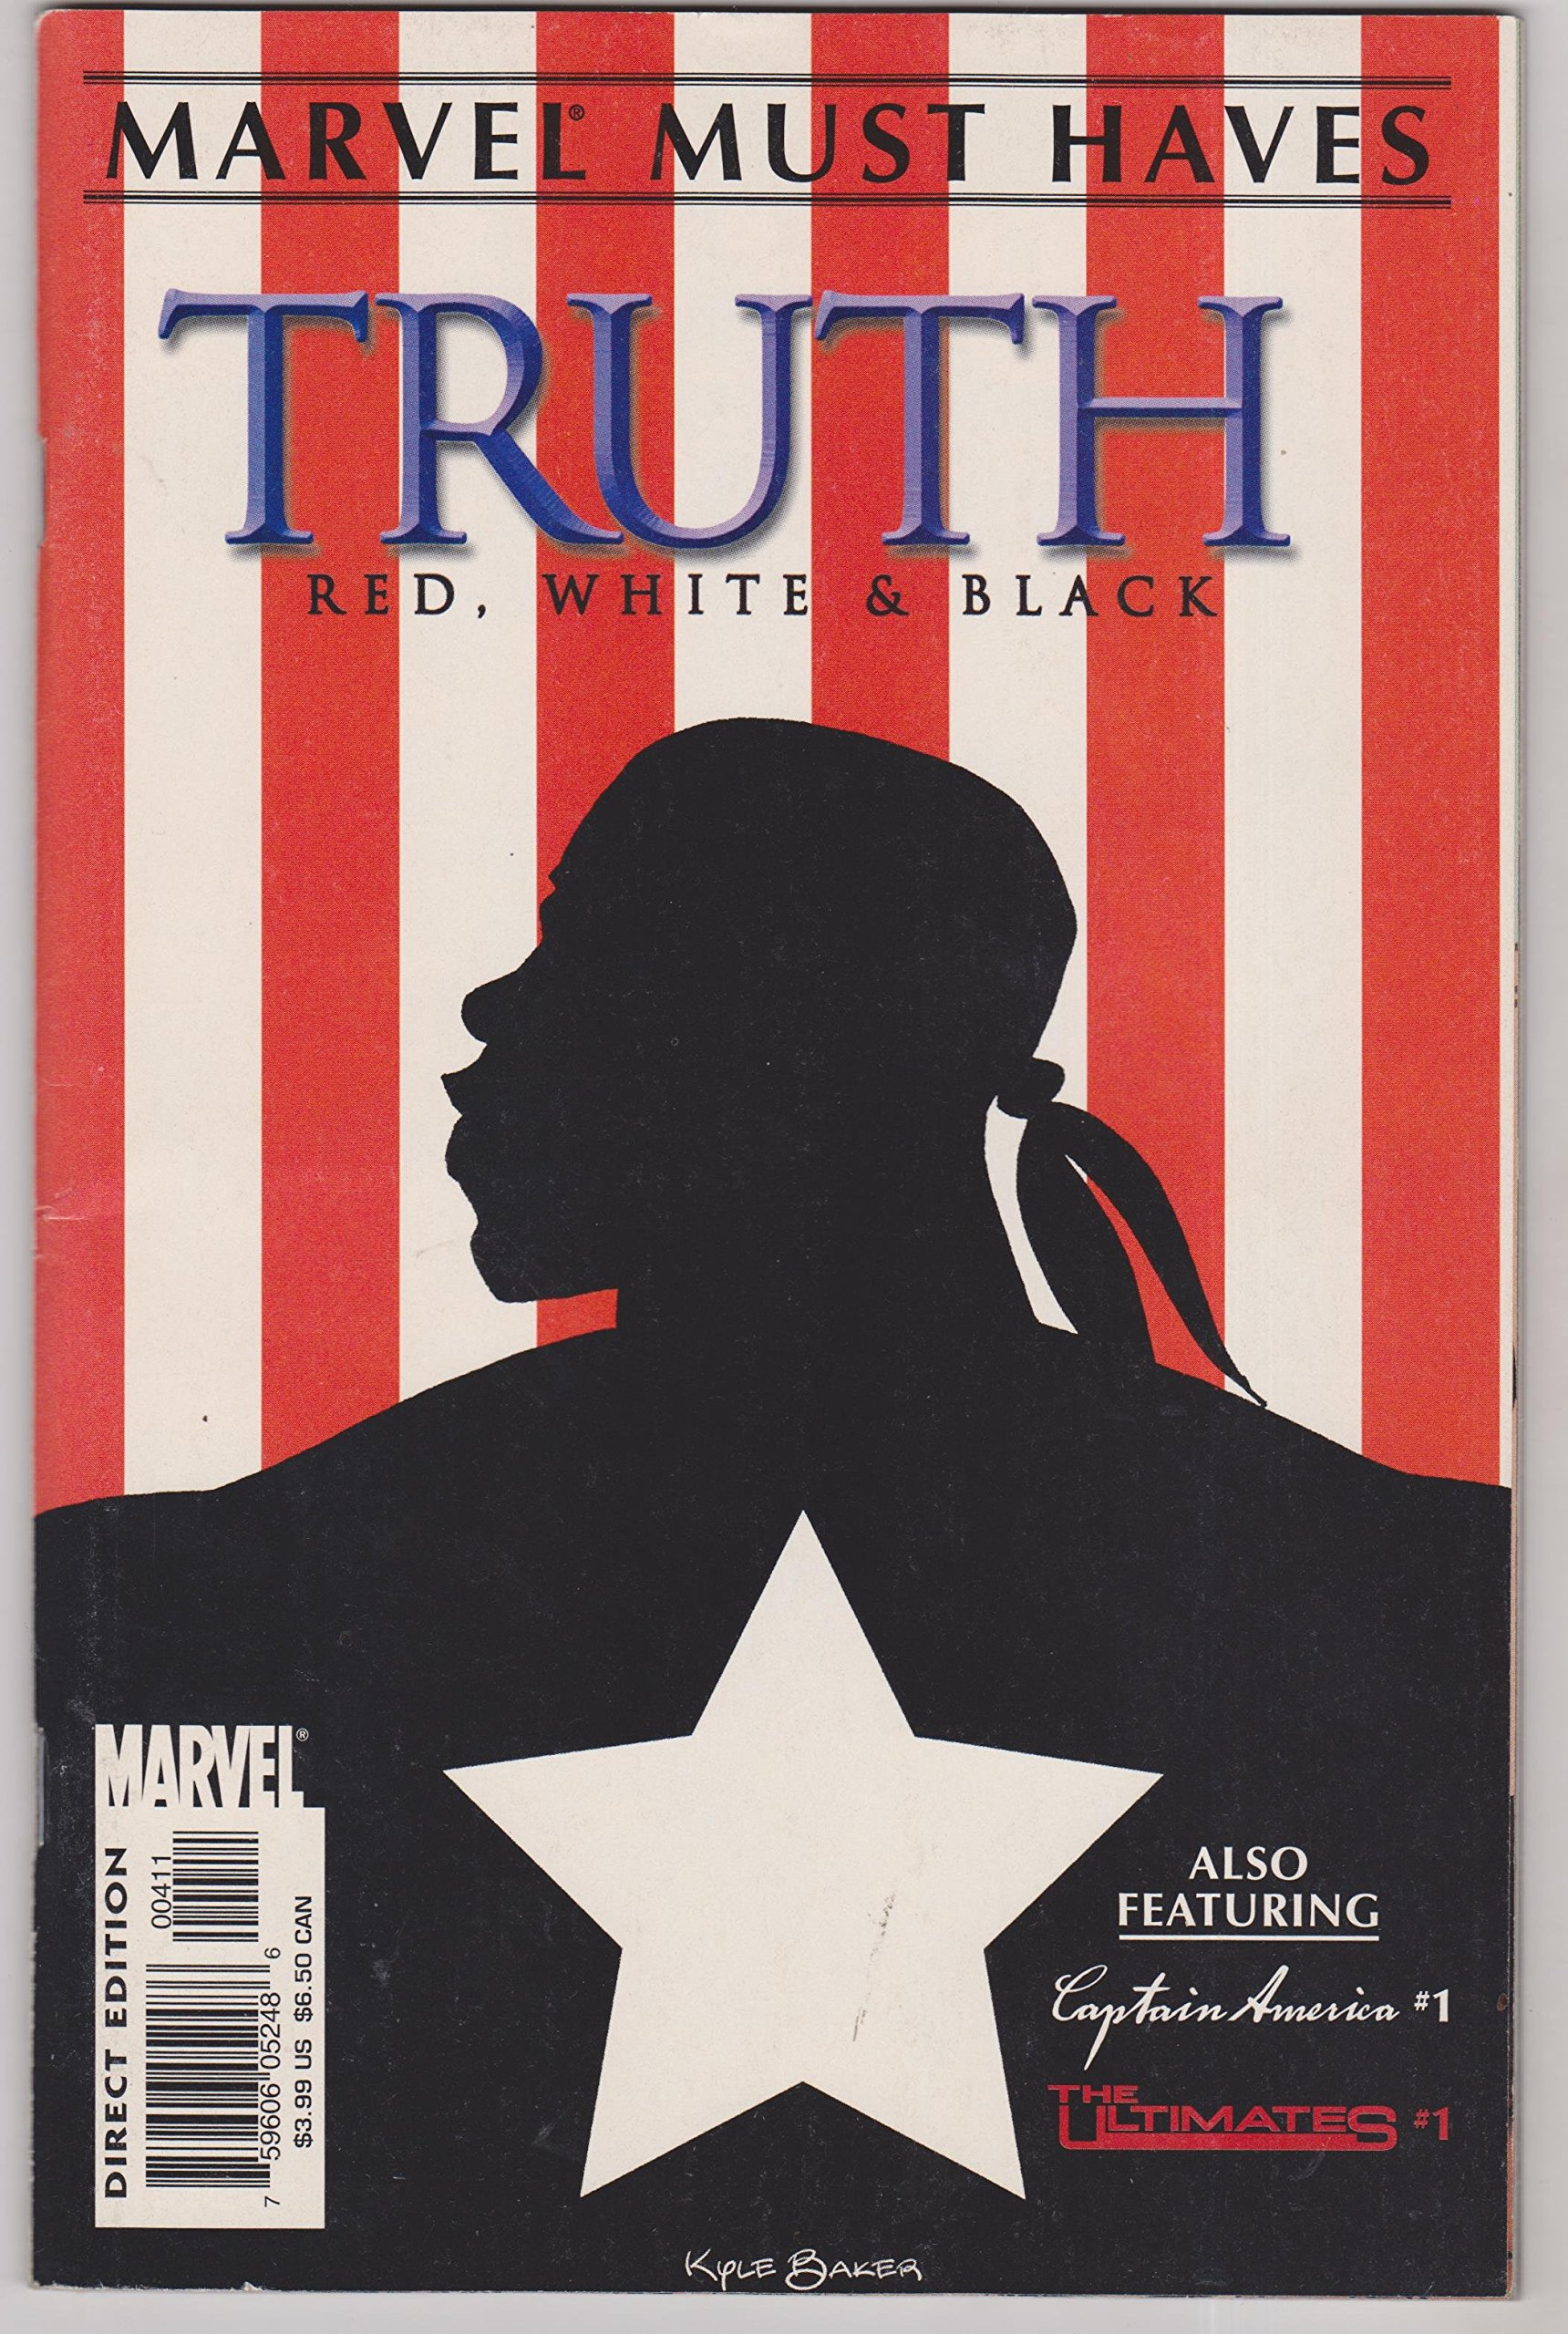 Read Online MARVEL MUST HAVES - VOLUME 1, NUMBER 4 - TRUTH RED, WHITE AND BLACK ebook